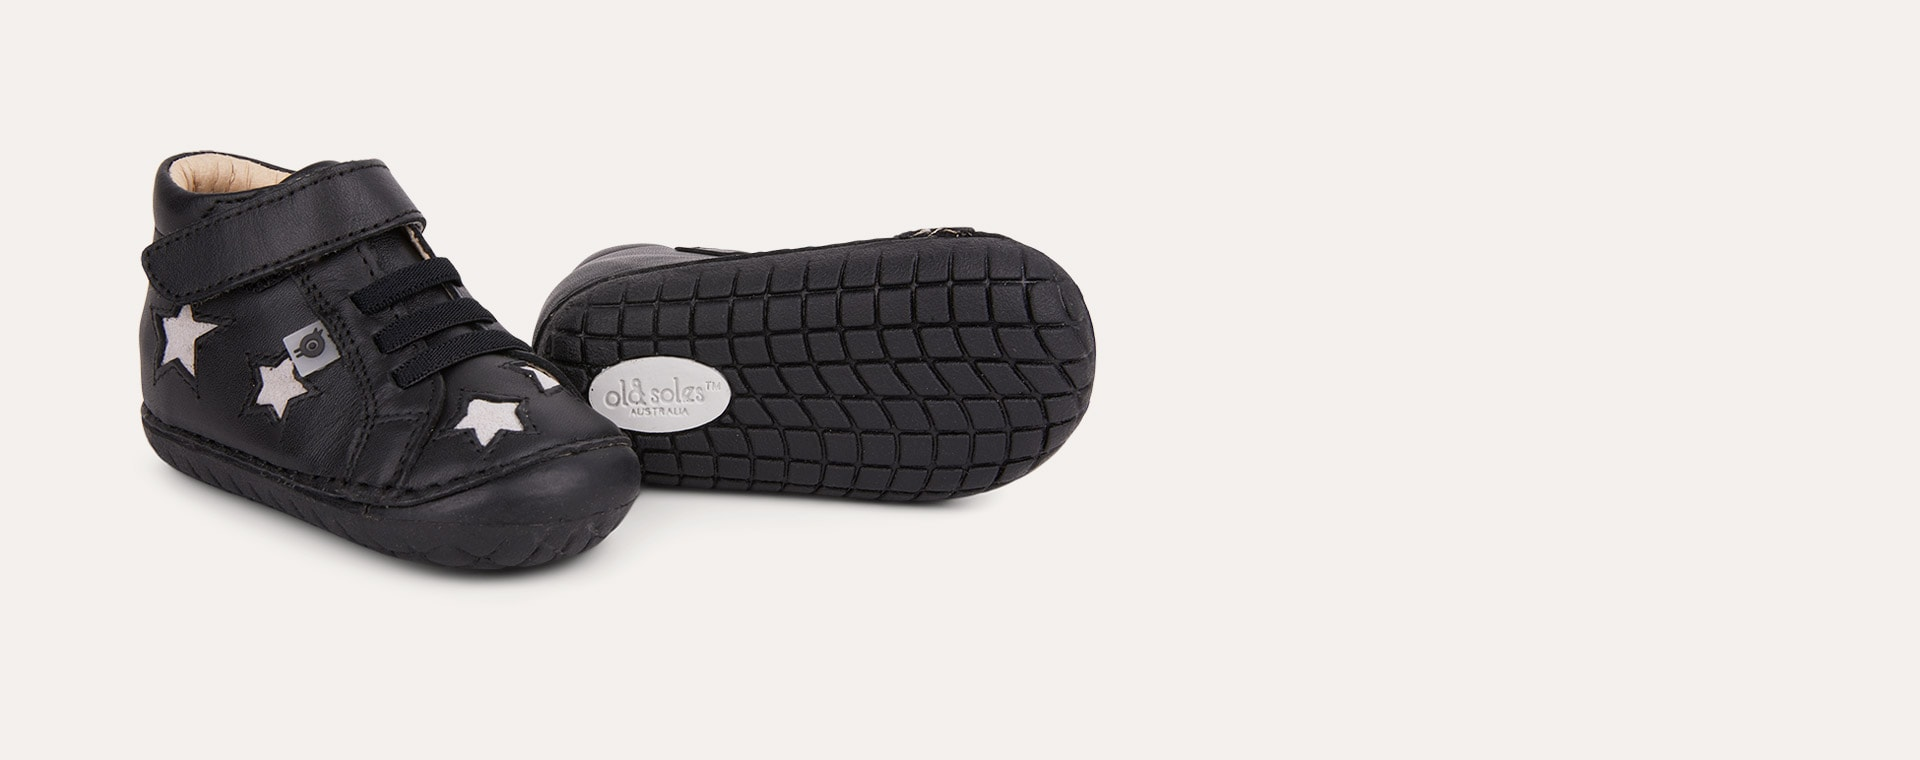 Black / Grey Suede old soles Reach Pave First Shoe